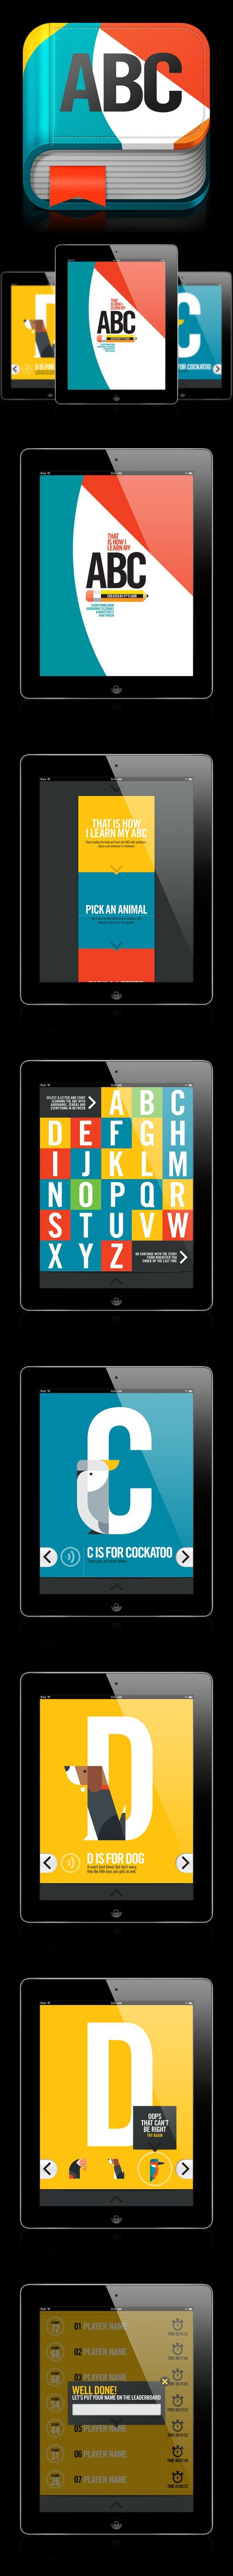 Alphabets #iPad #AppDesign for kids